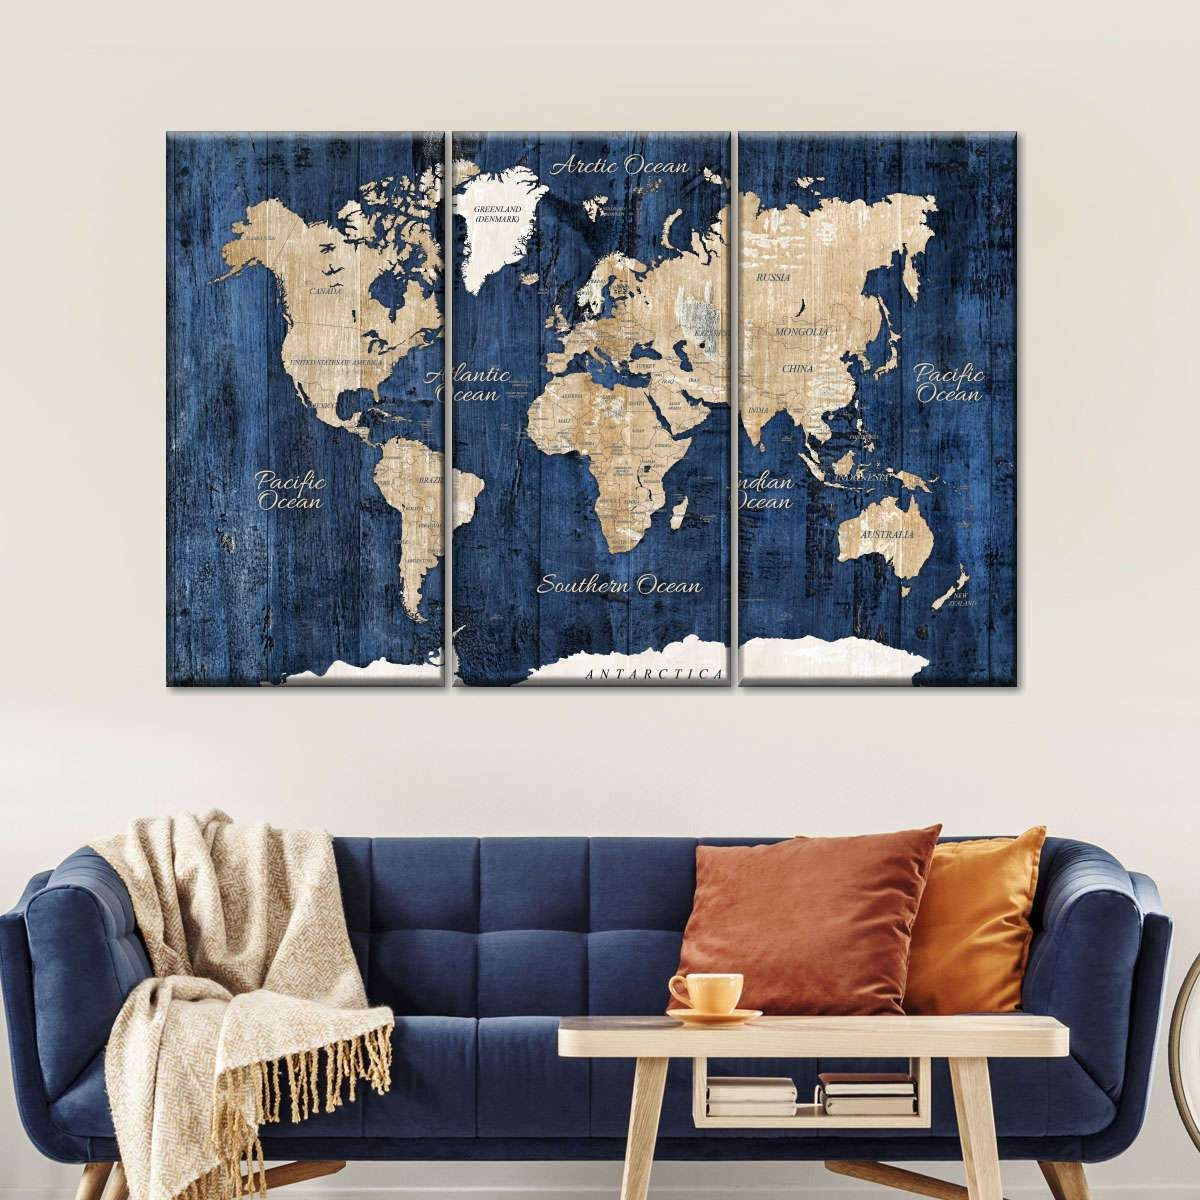 World Map On Wooden Wall Multi Panel Canvas Wall Art In 2021 World Map Wall Art Wall Canvas Wall Art Canvas Prints